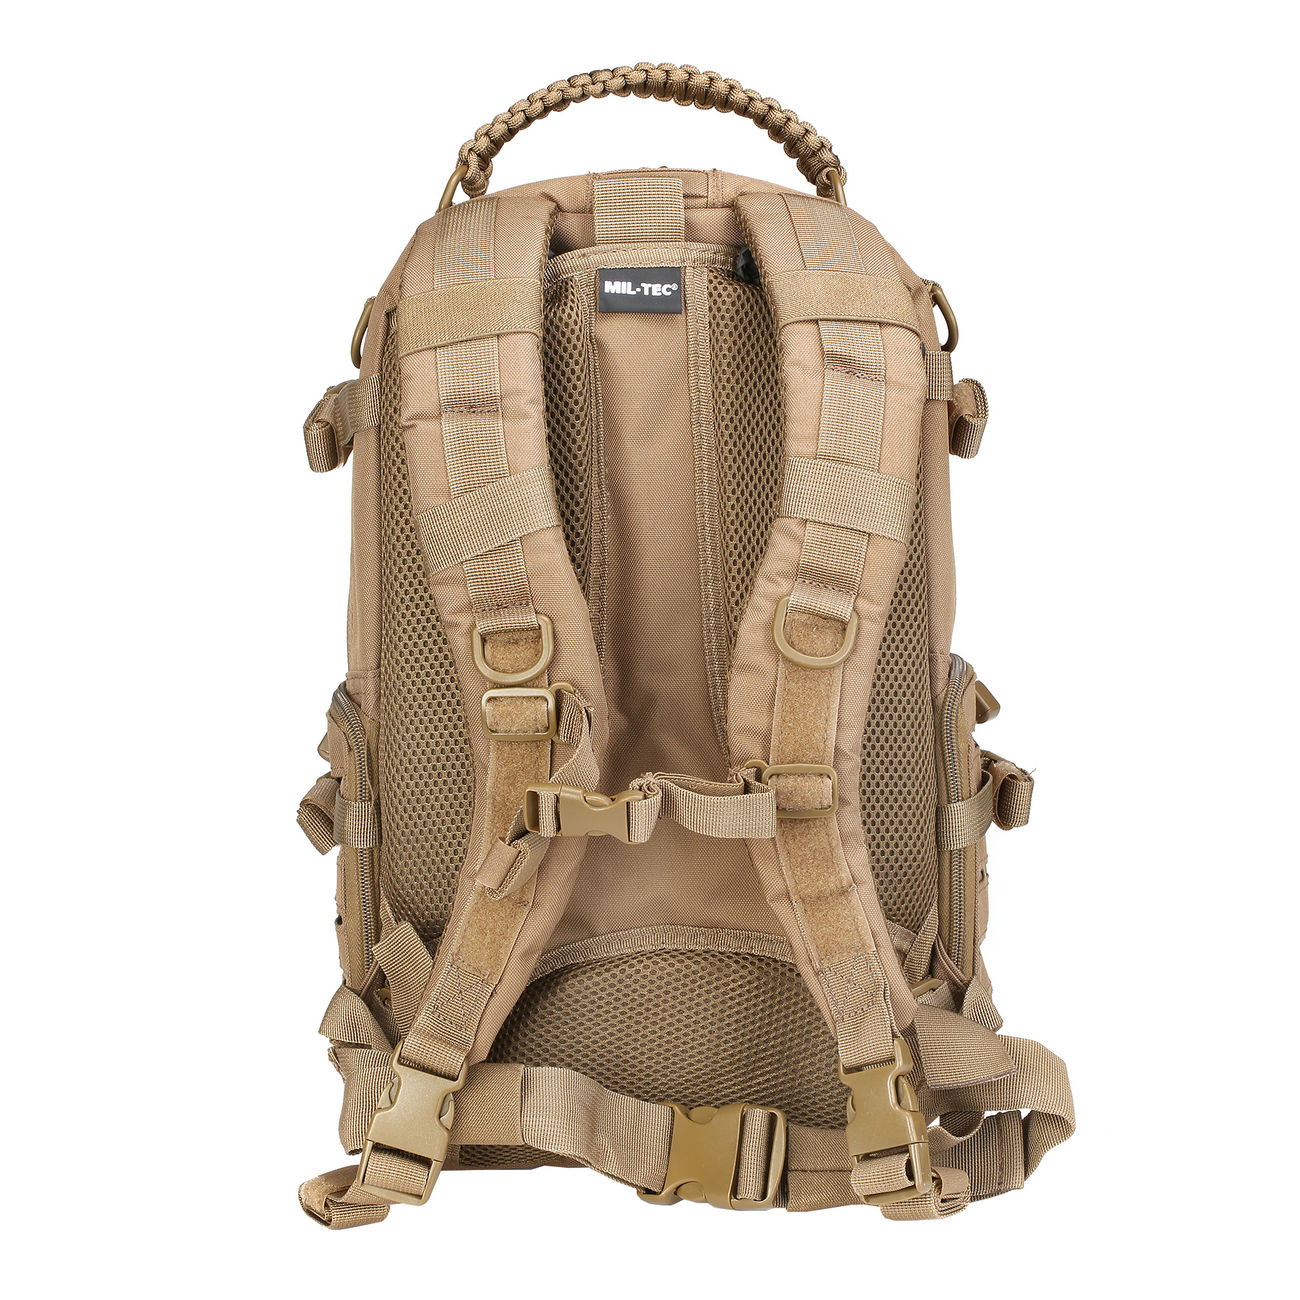 Mil-Tec Rucksack Mission Pack Laser Cut Small dark coyote 2